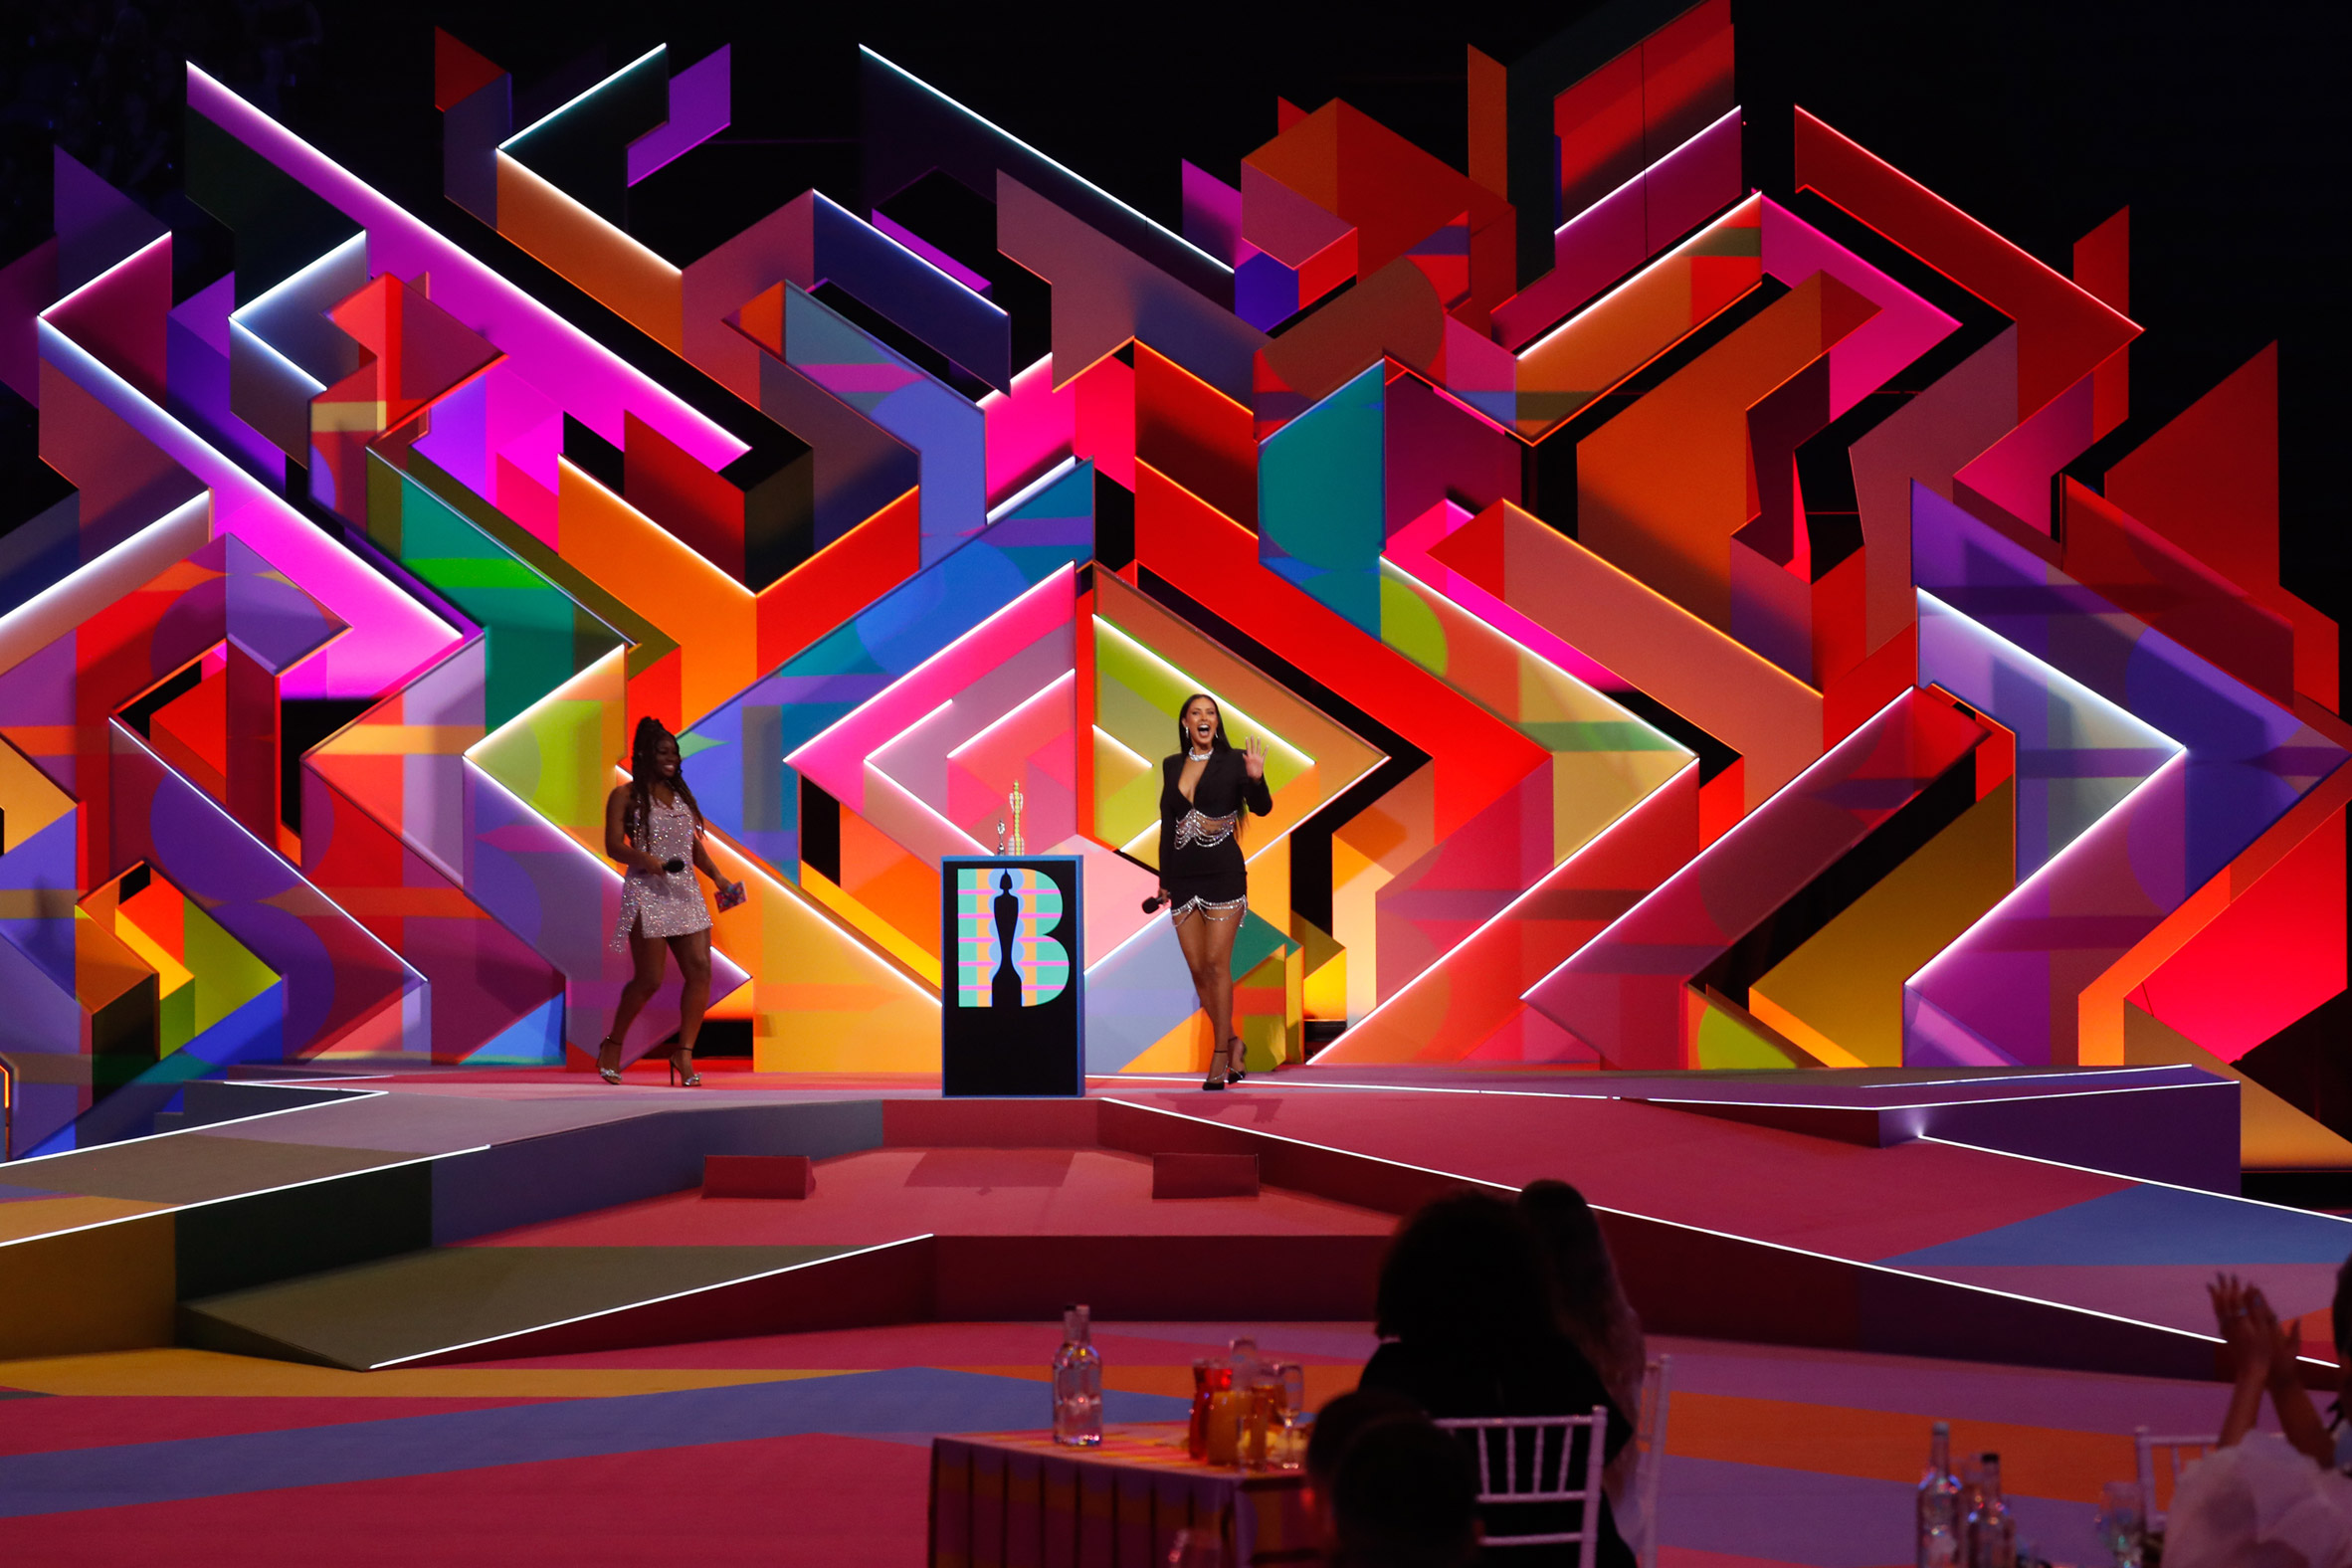 Wide view of Es Devlin's set design for Brit Awards 2021